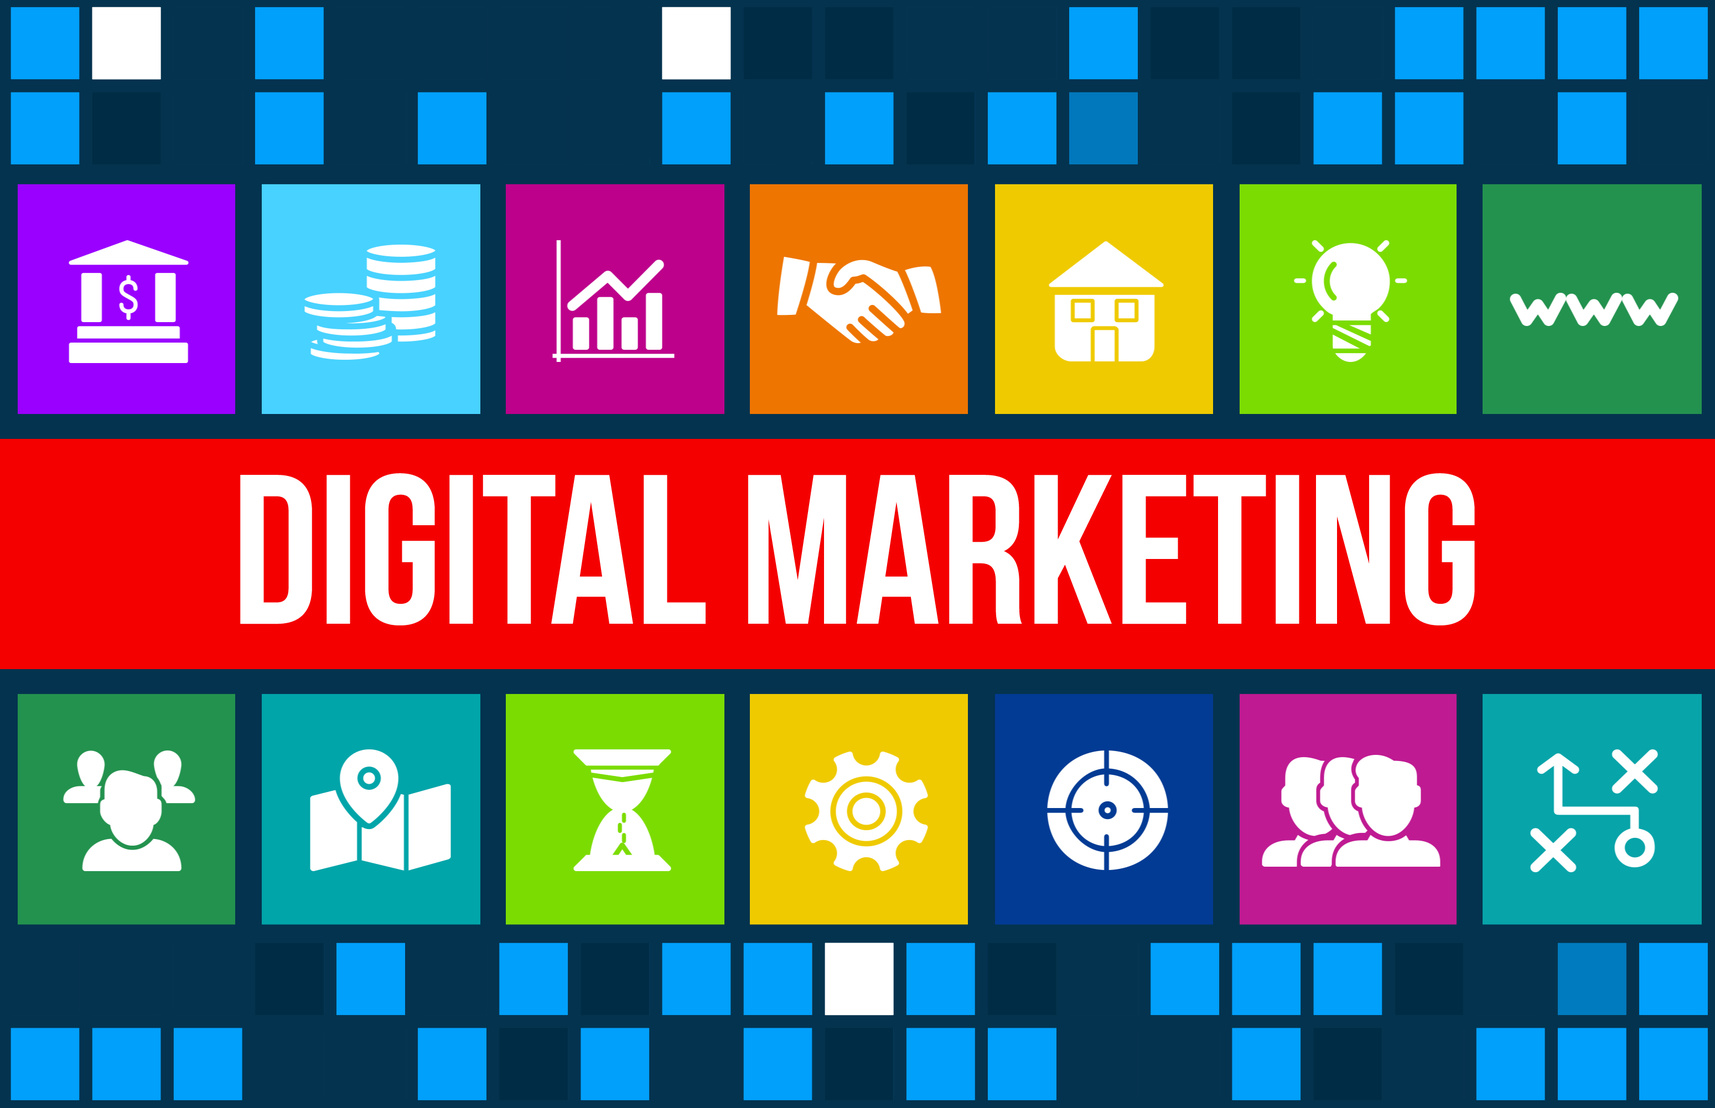 Digital Marketing, a Doral Chamber of Commerce strategy.